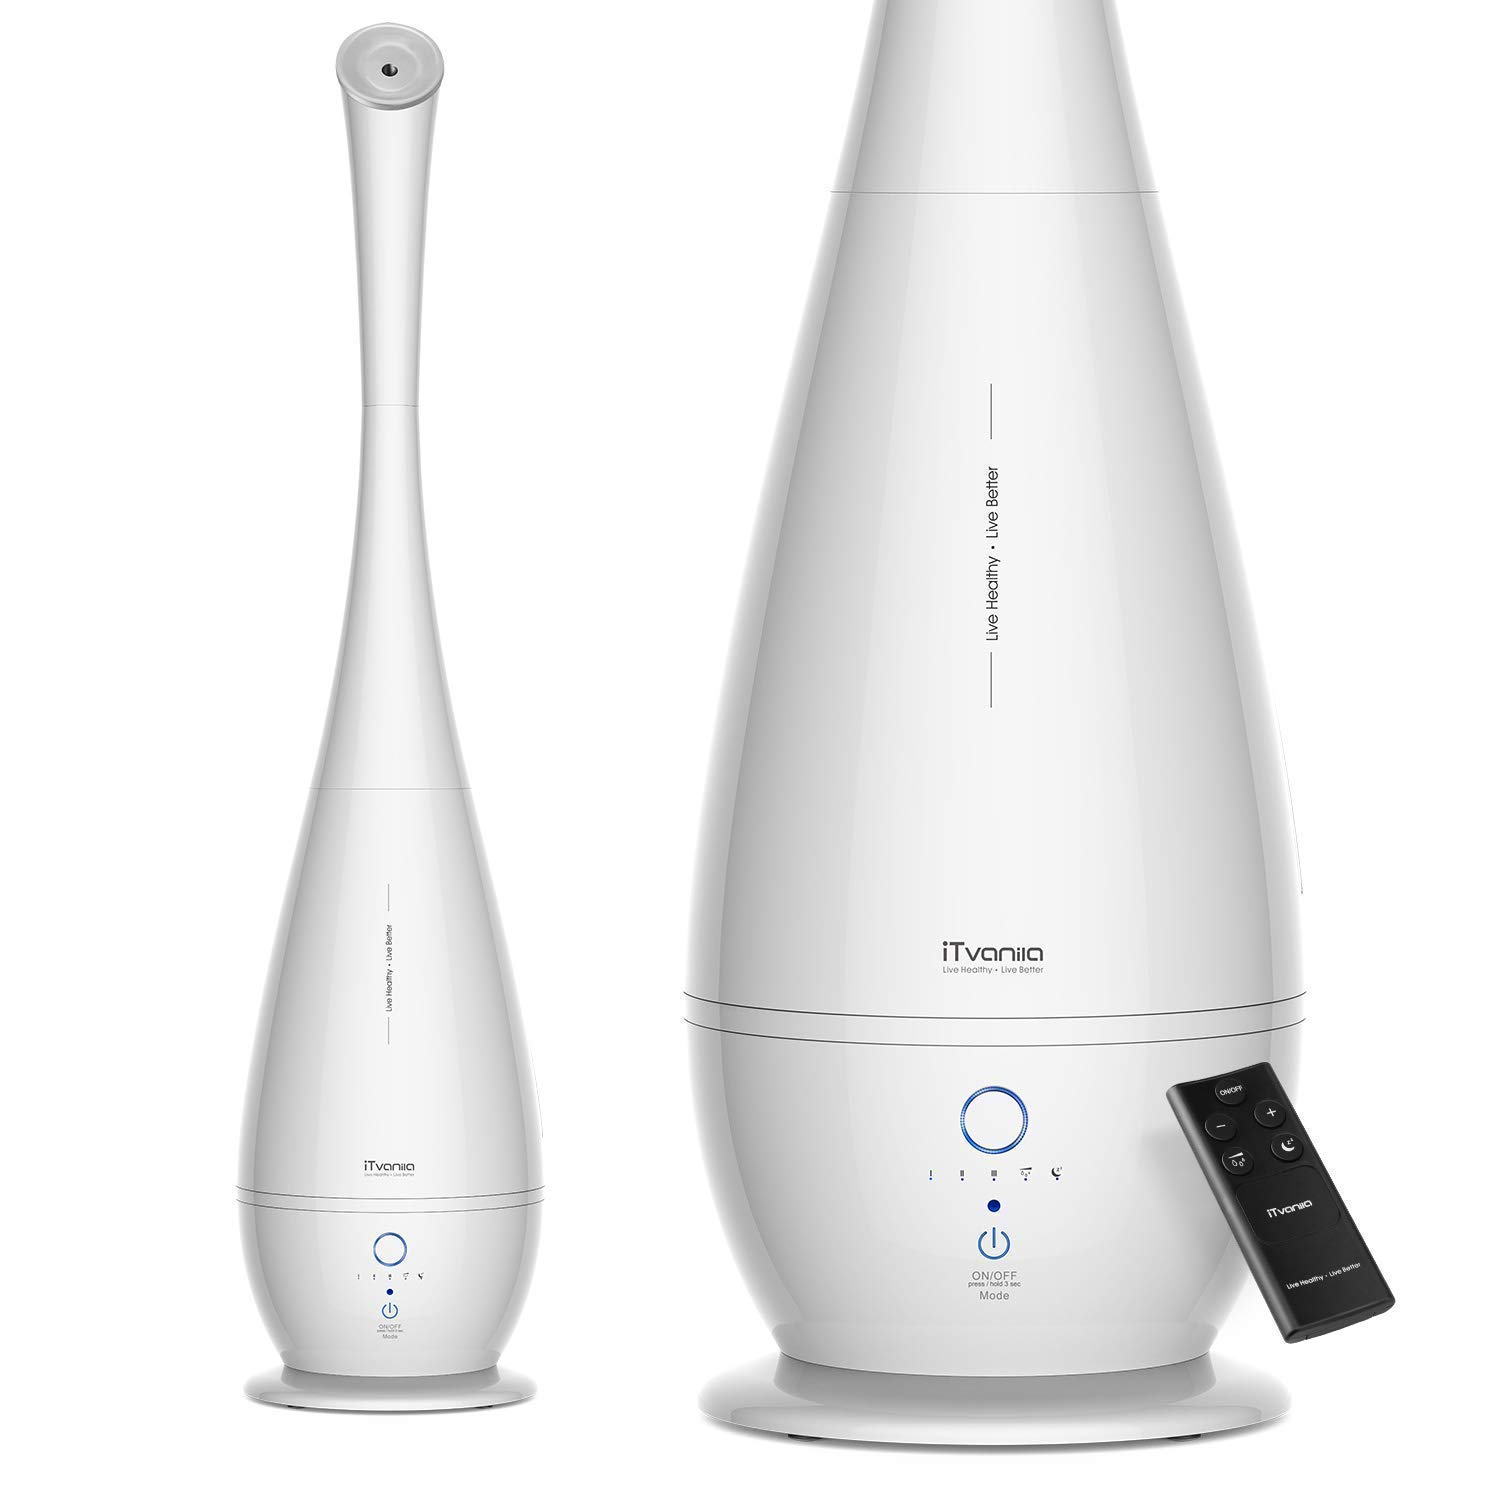 iTvanila Cool Mist Humidifier, 5L 35inch Ultrasonic Humidifier, Humidifiers for Bedroom Babies Women Home Decor, with Remote Smart Humidit Oil Diffuser (White)